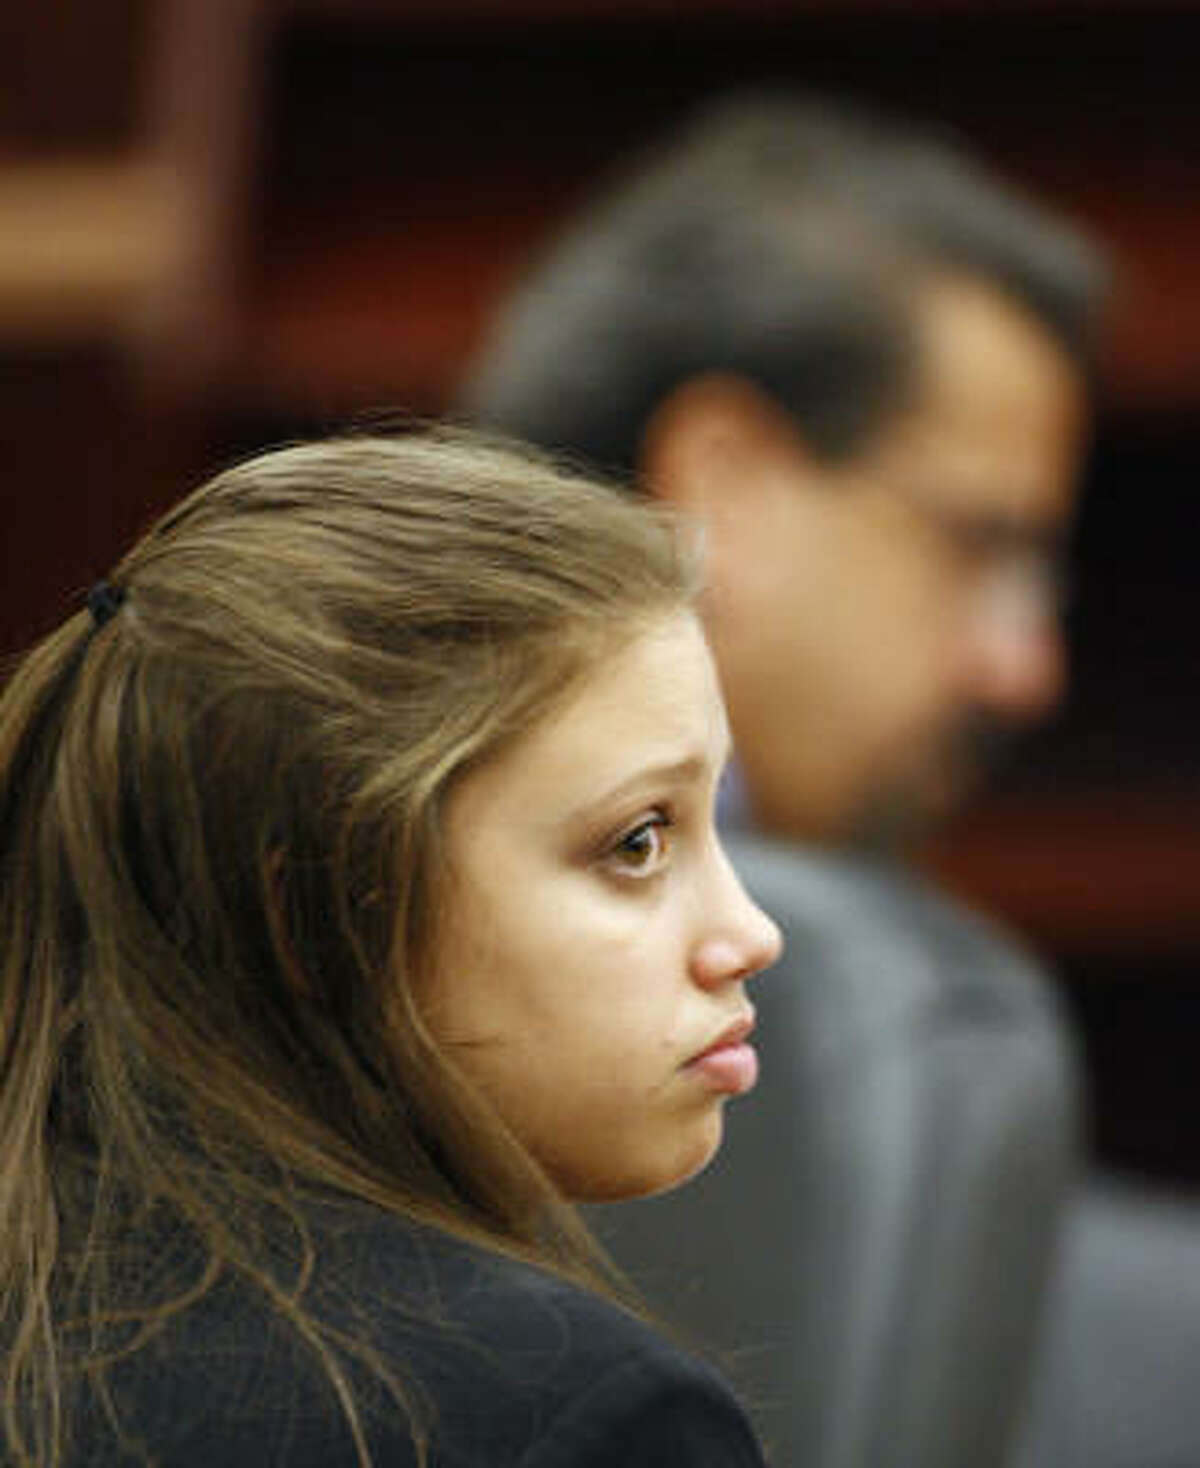 In 2007, Ashley Benton went on trial for the murder of Gabriel Granillo. The trial ended with a hung jury. Benton later pleaded guilty to aggravated assault.